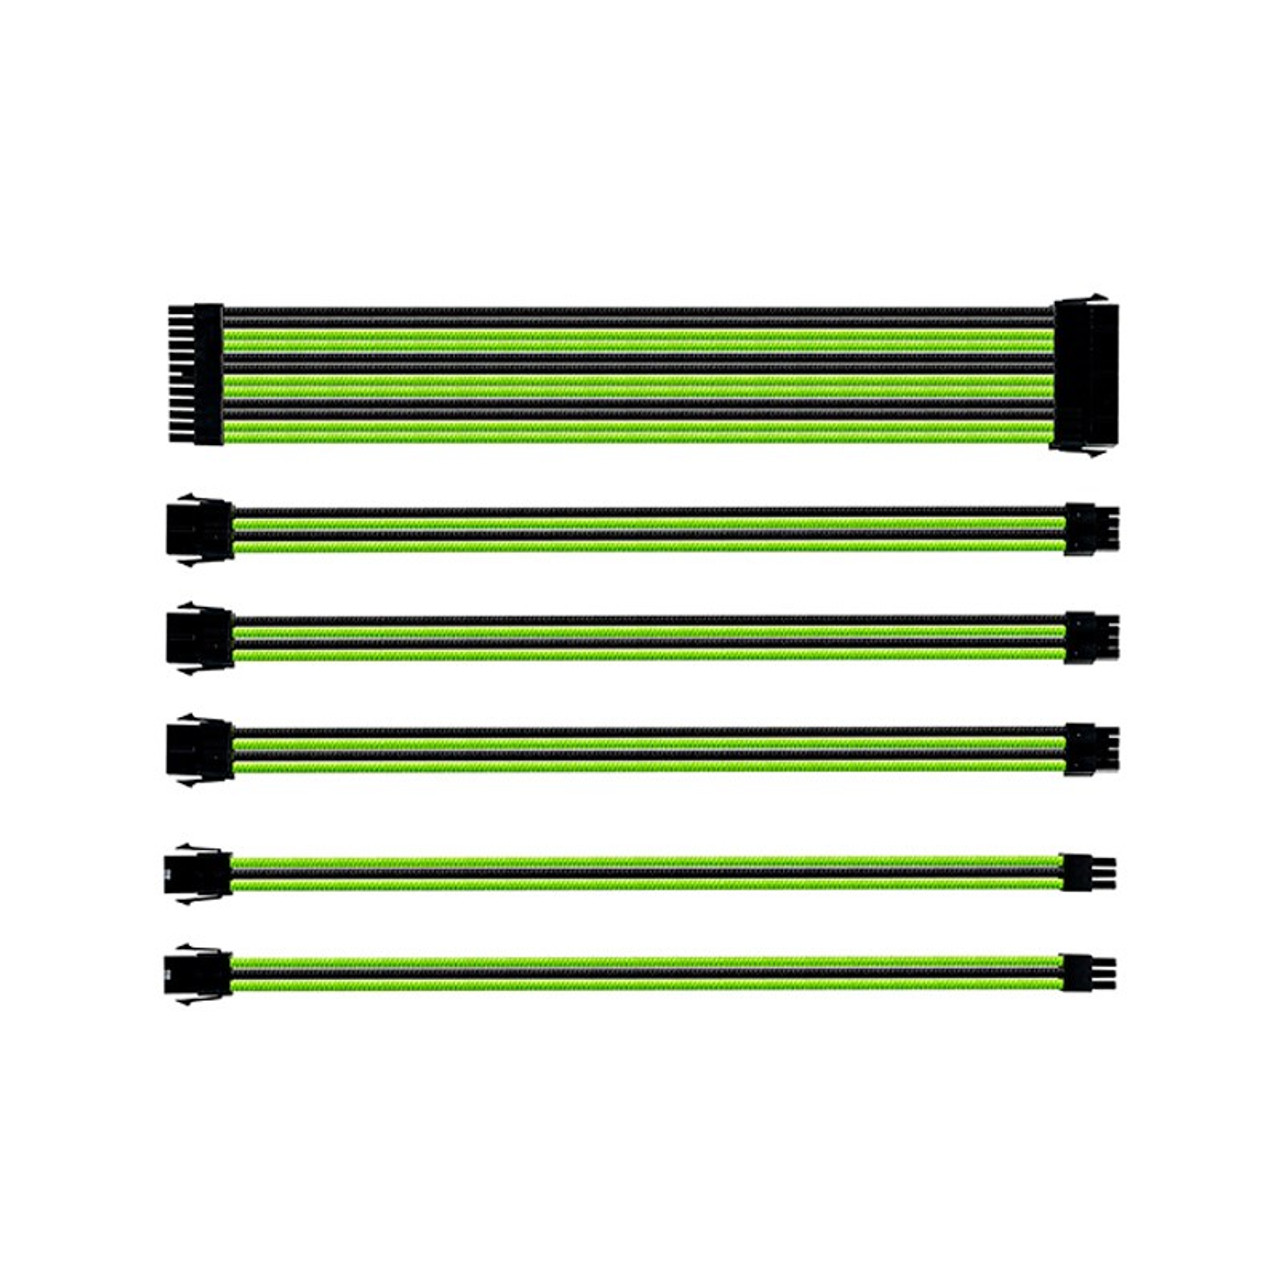 Image for Cooler Master Universal PSU Sleeved Extension Cable Kit - Green/Black CX Computer Superstore